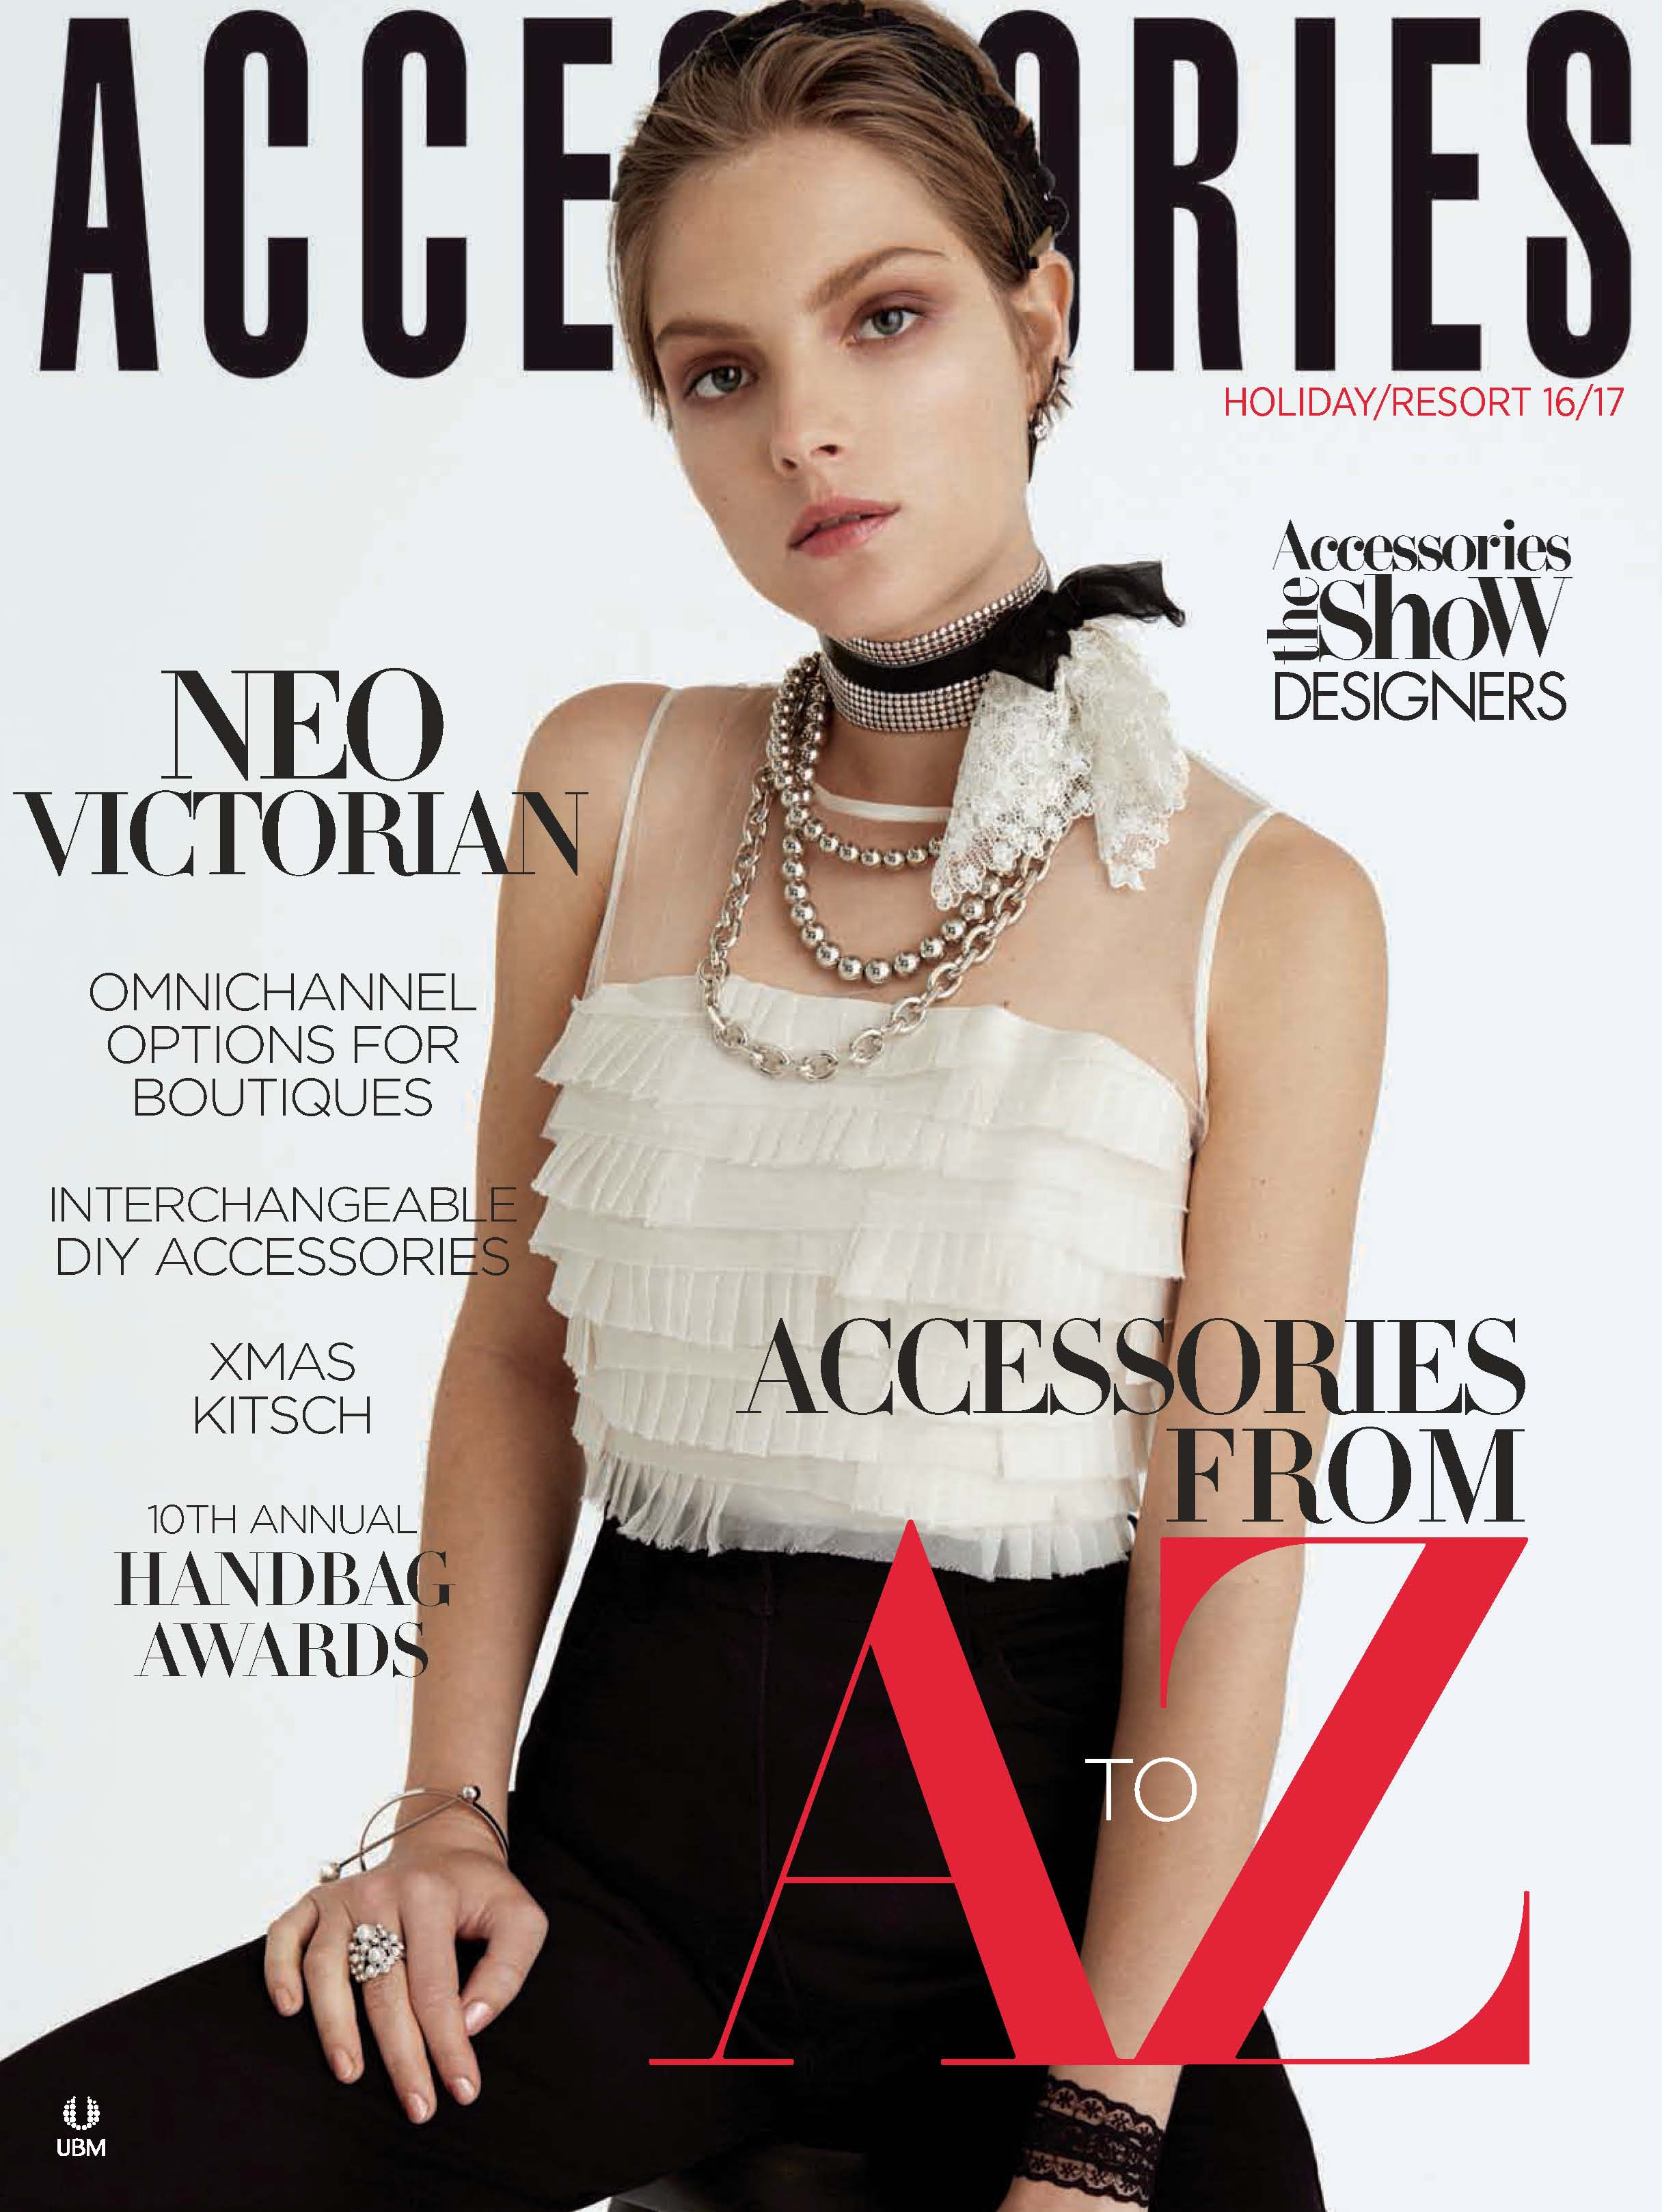 ACCESSORIES MAG - AUGUST 2016